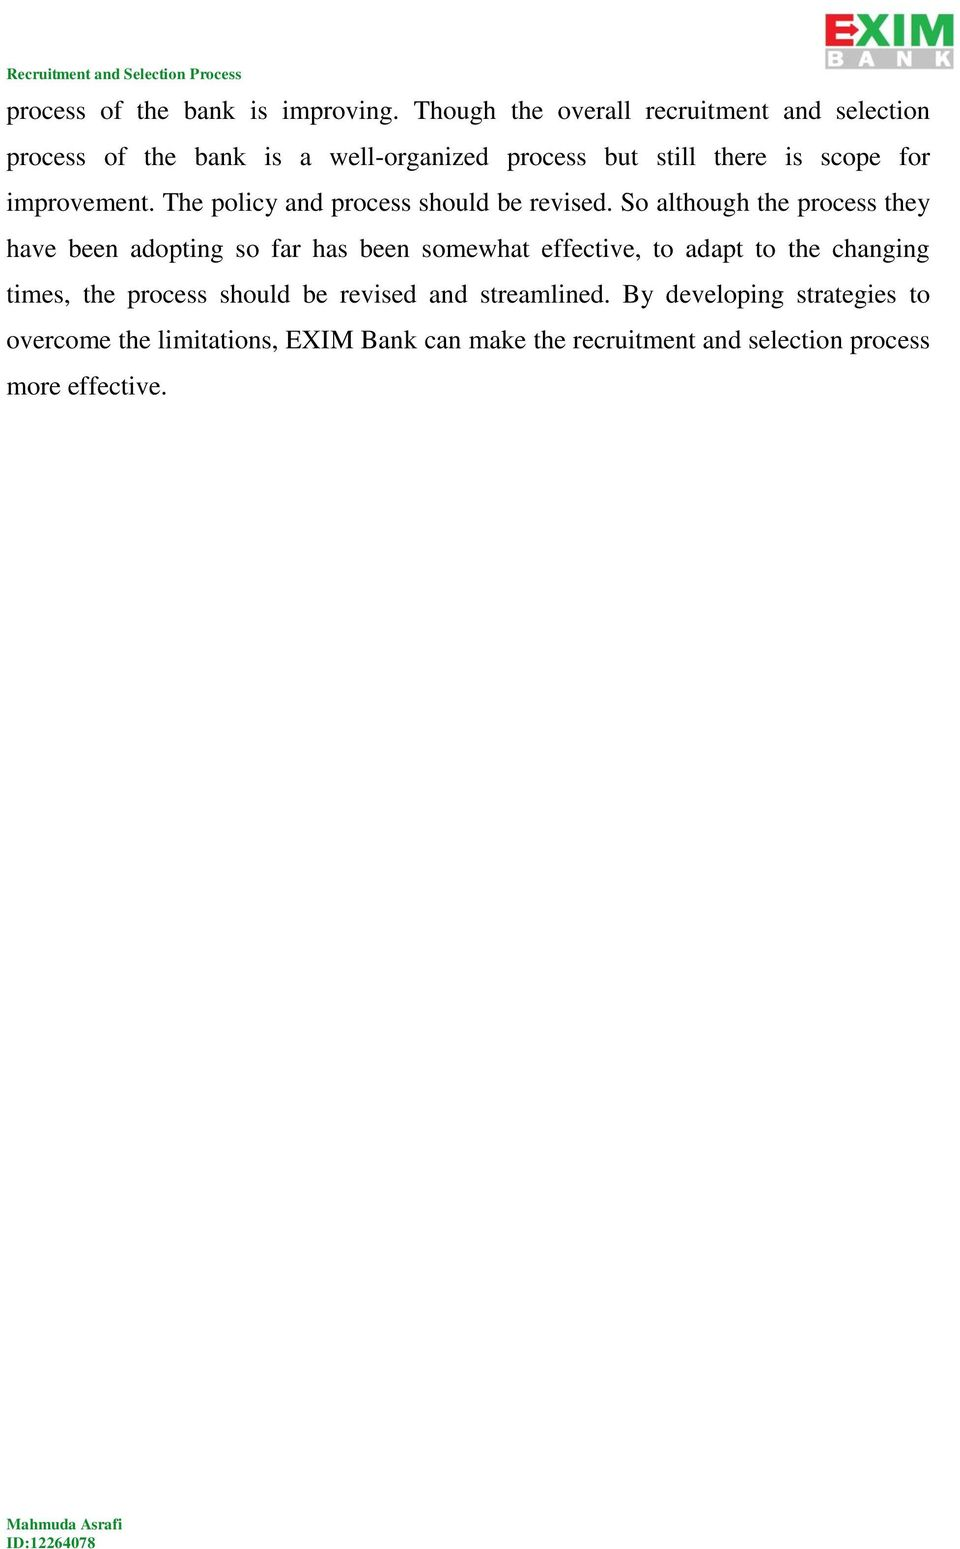 articles on recruitment and selection process pdf